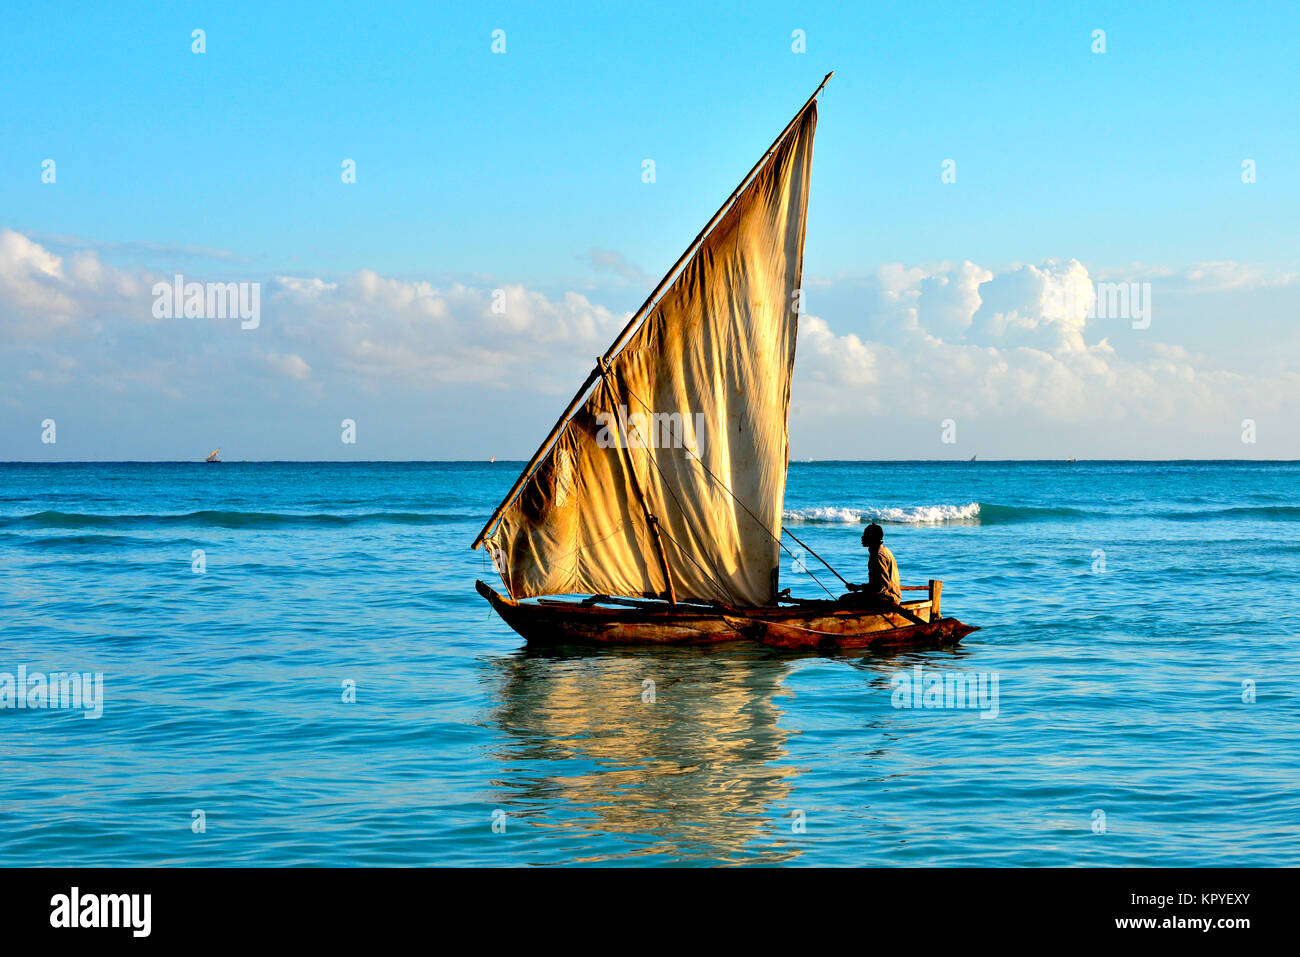 Sunrise by the sea in Zanzibar, tropical island paradize of Tanzania. Yacht on water. - Stock Image